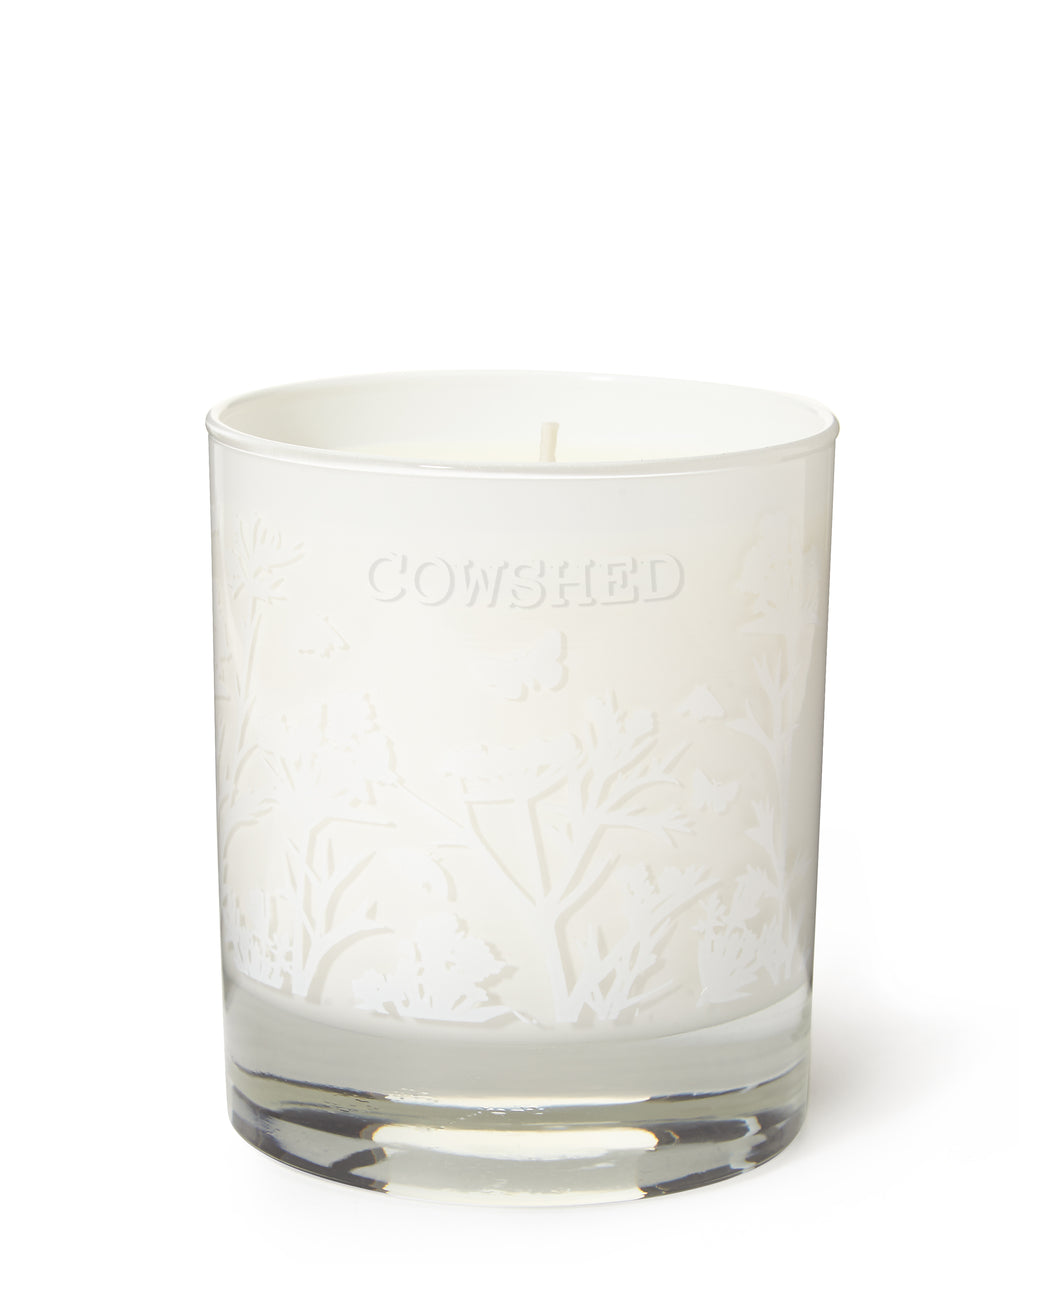 Uplifting Room Candle | Grumpy Cow